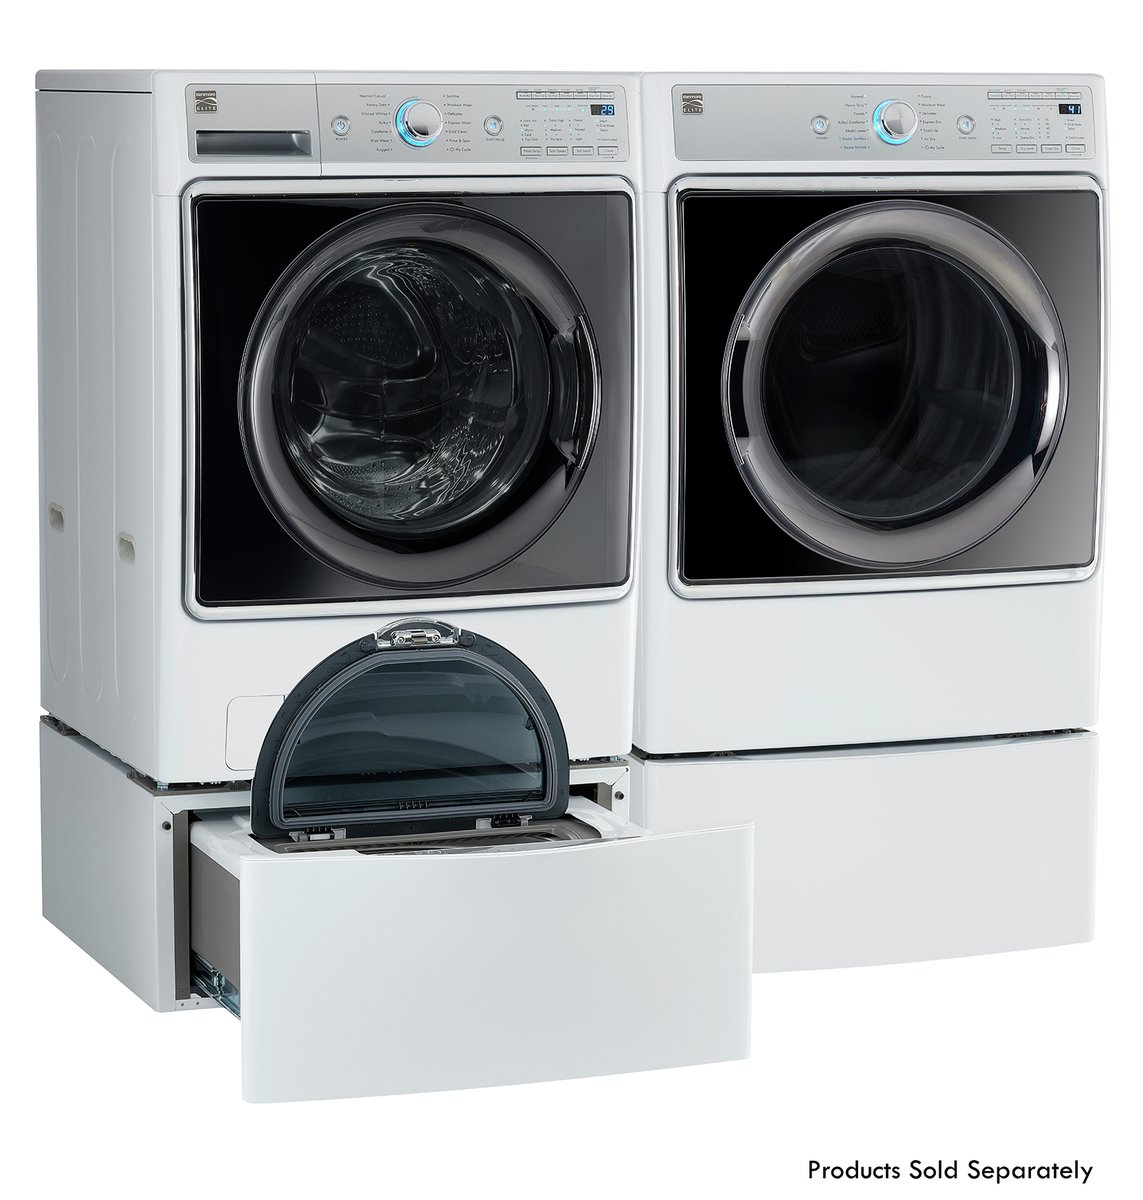 Kenmore Smart 91982 9.0 cu. ft. Gas Dryer with Accela Steam Technology in White - Compatible with Amazon Alexa, includes delivery and hookup (Available in select cities only) by Kenmore (Image #3)